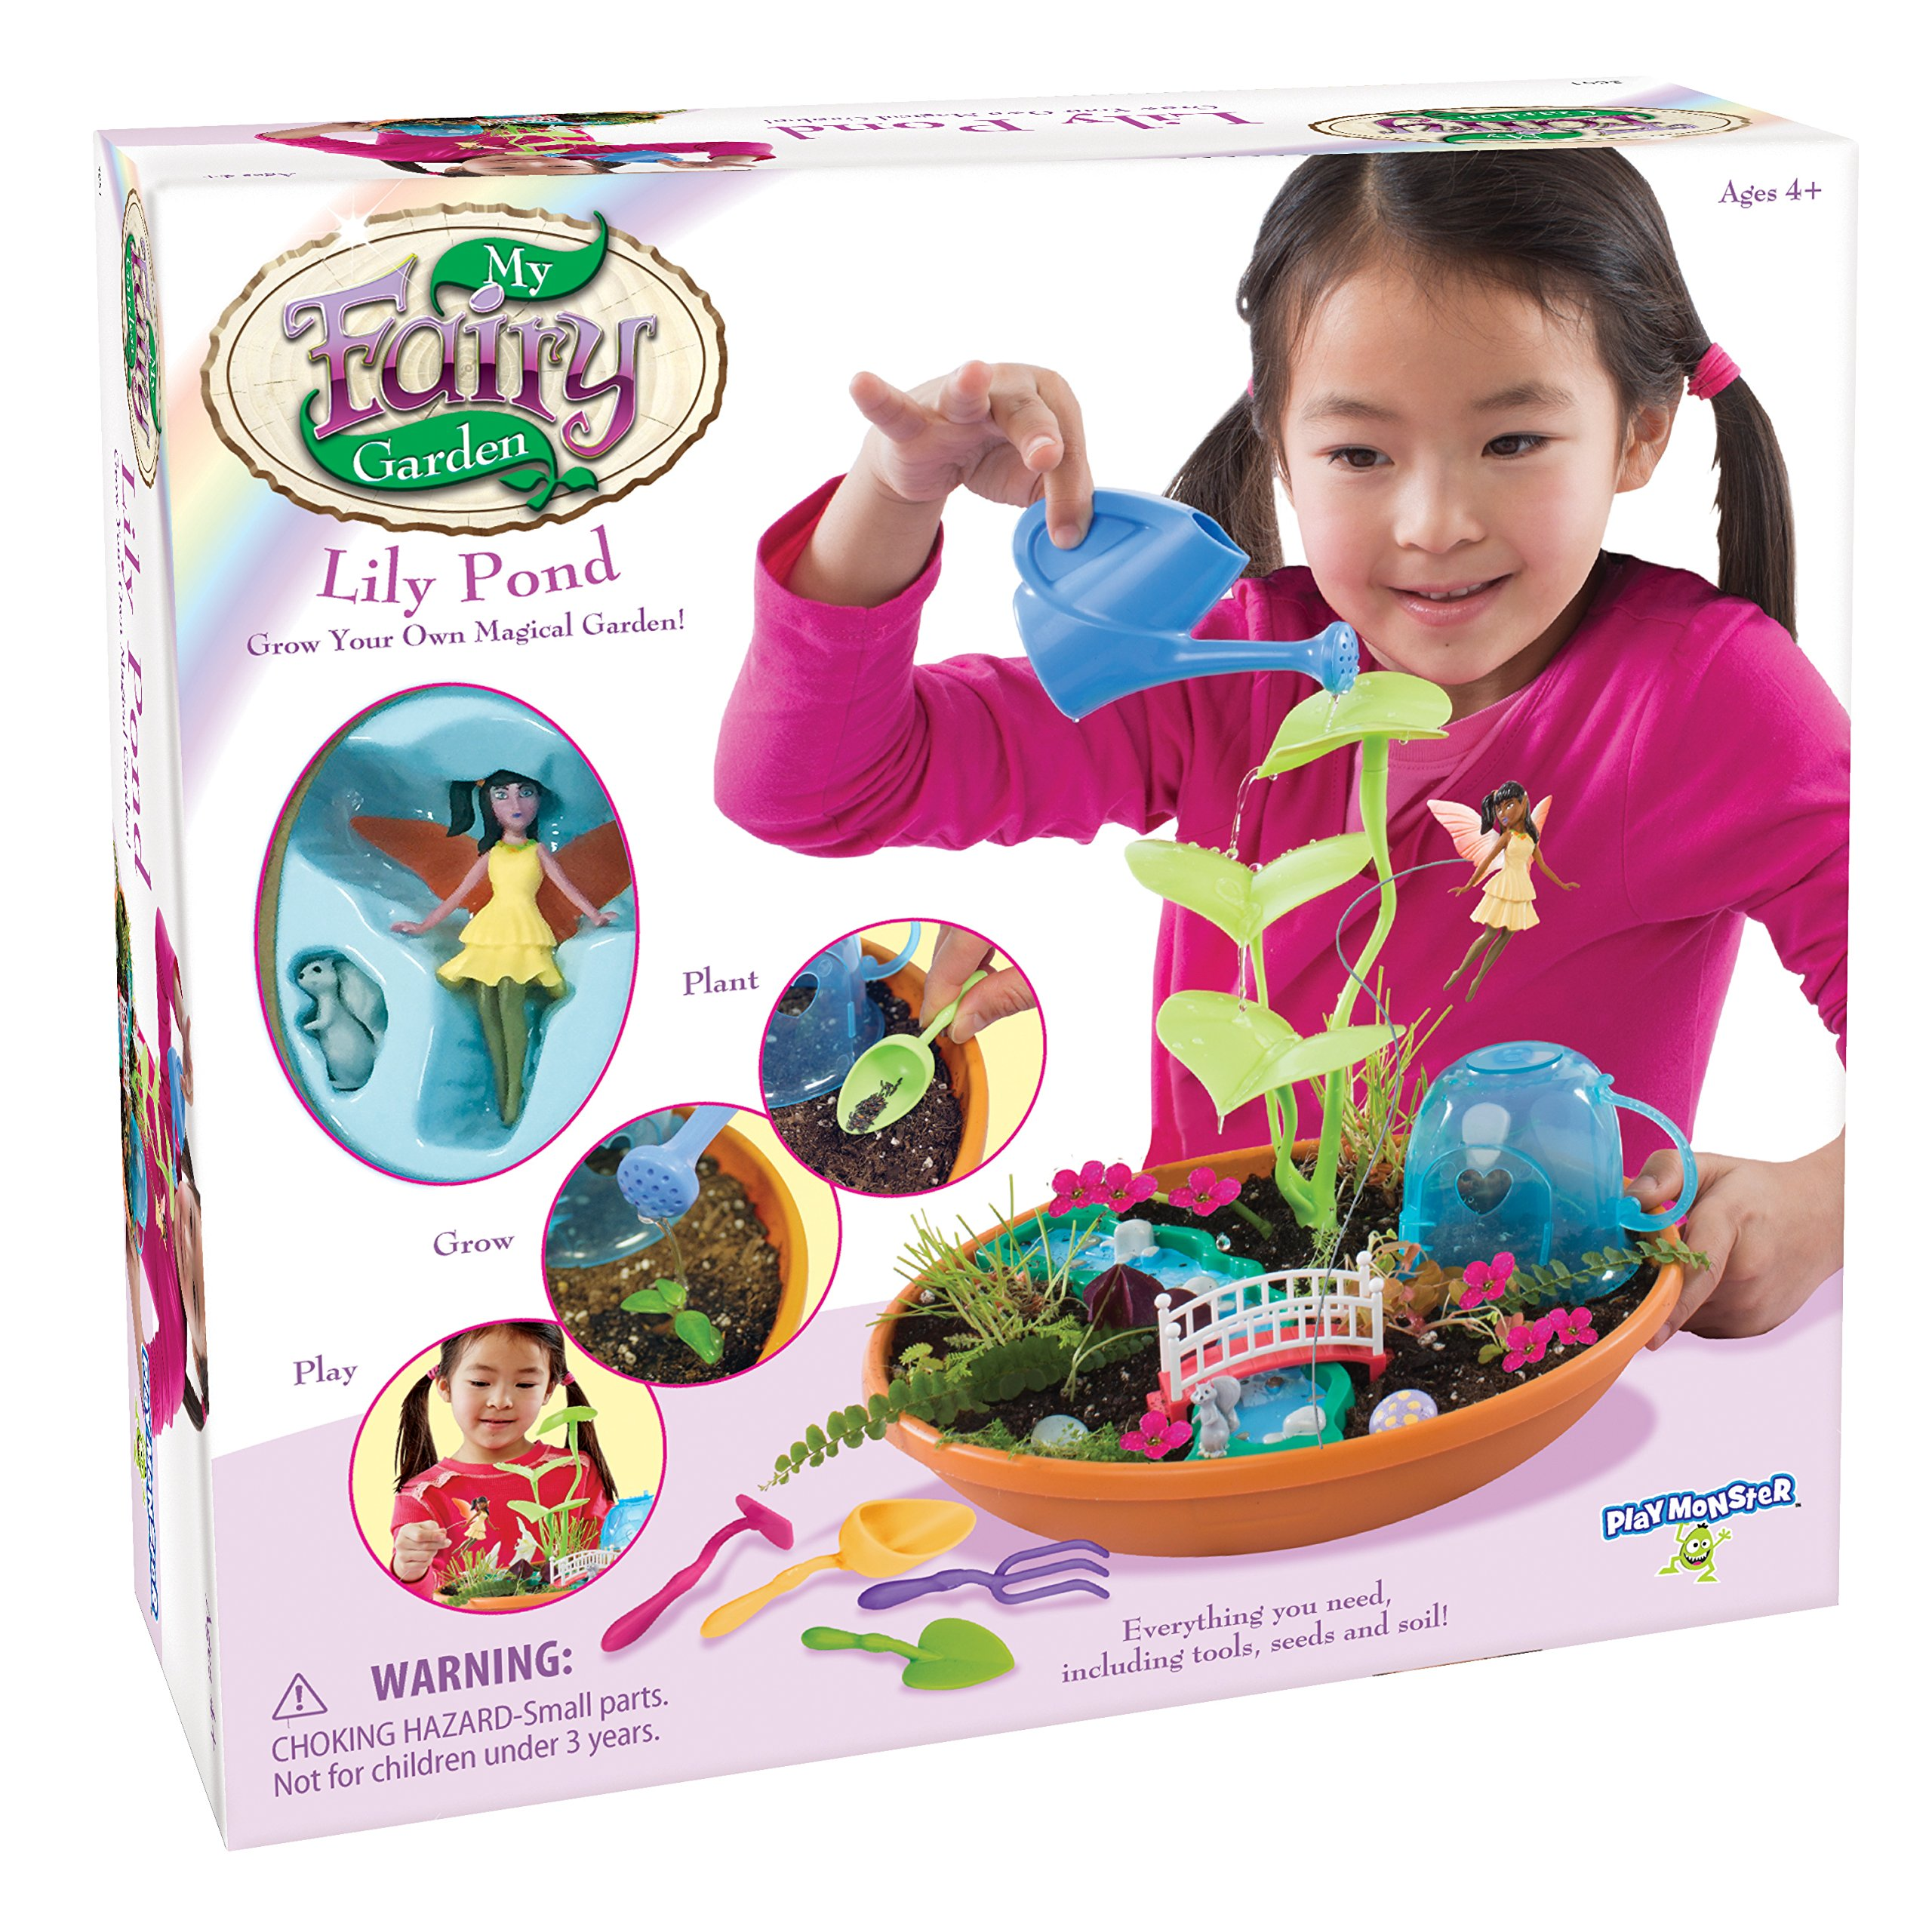 PlayMonster My Fairy Garden - Lily Pond